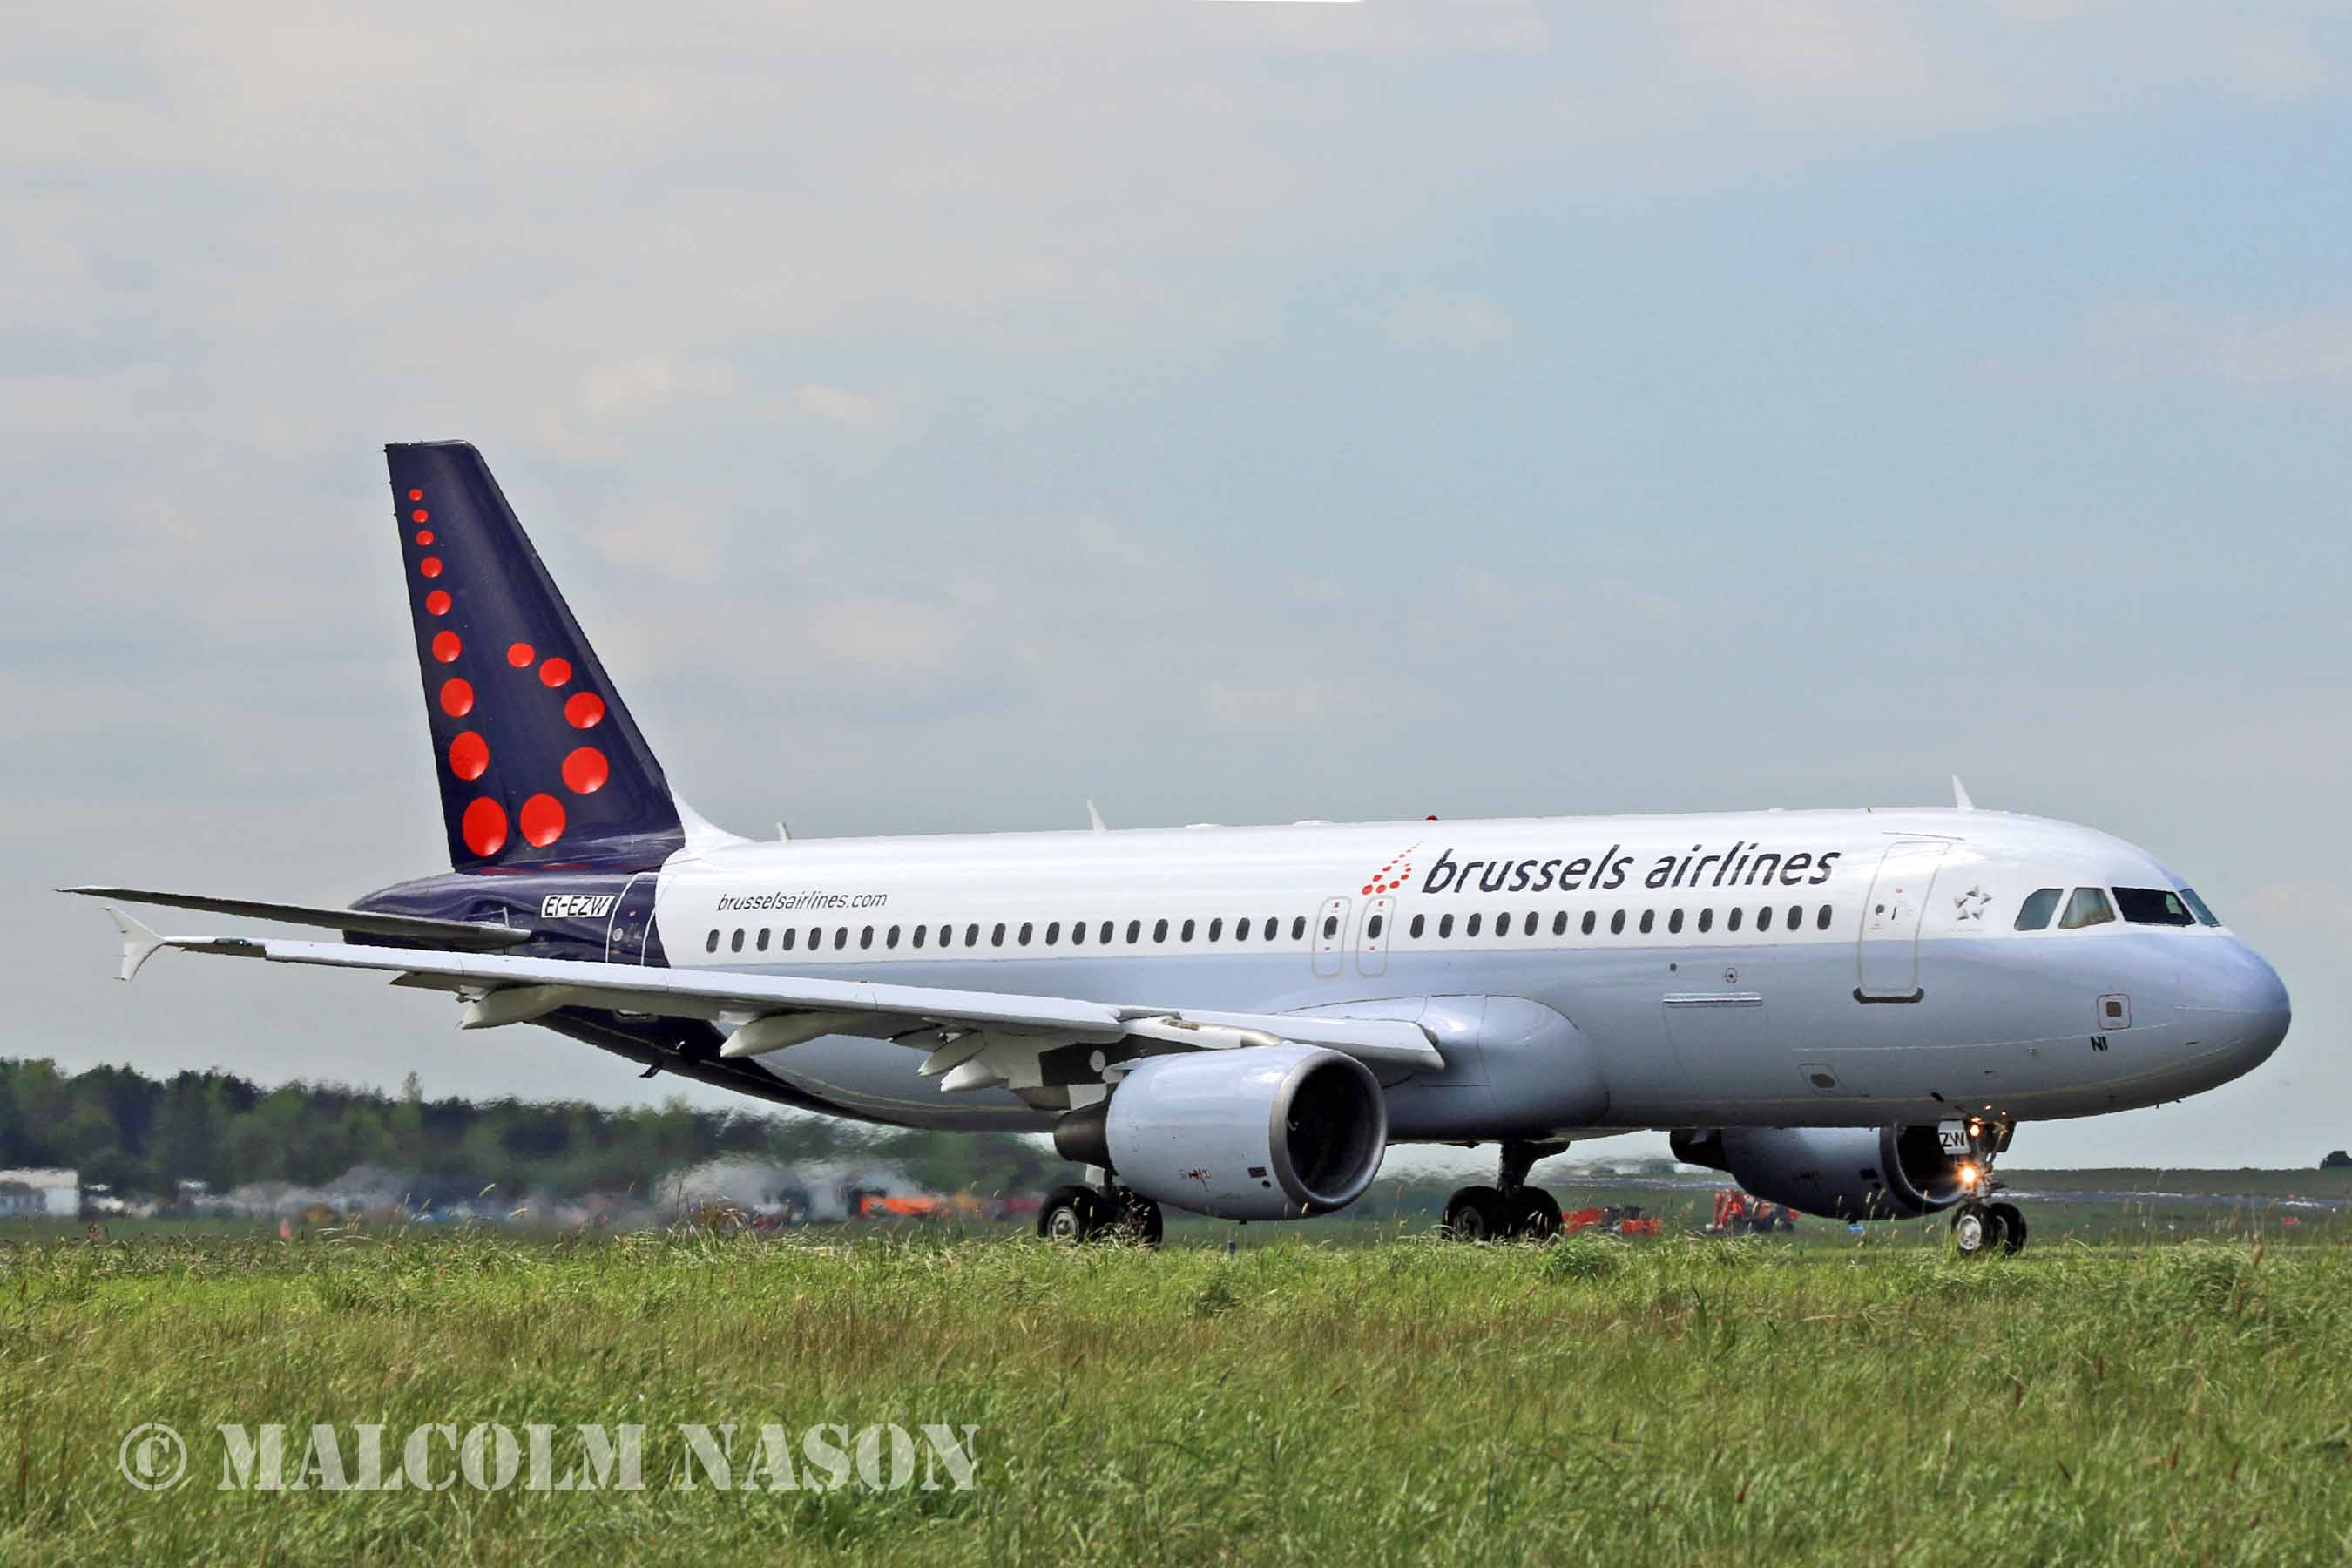 Brussels Airlines' latest A320 arrived at Brussels Airport